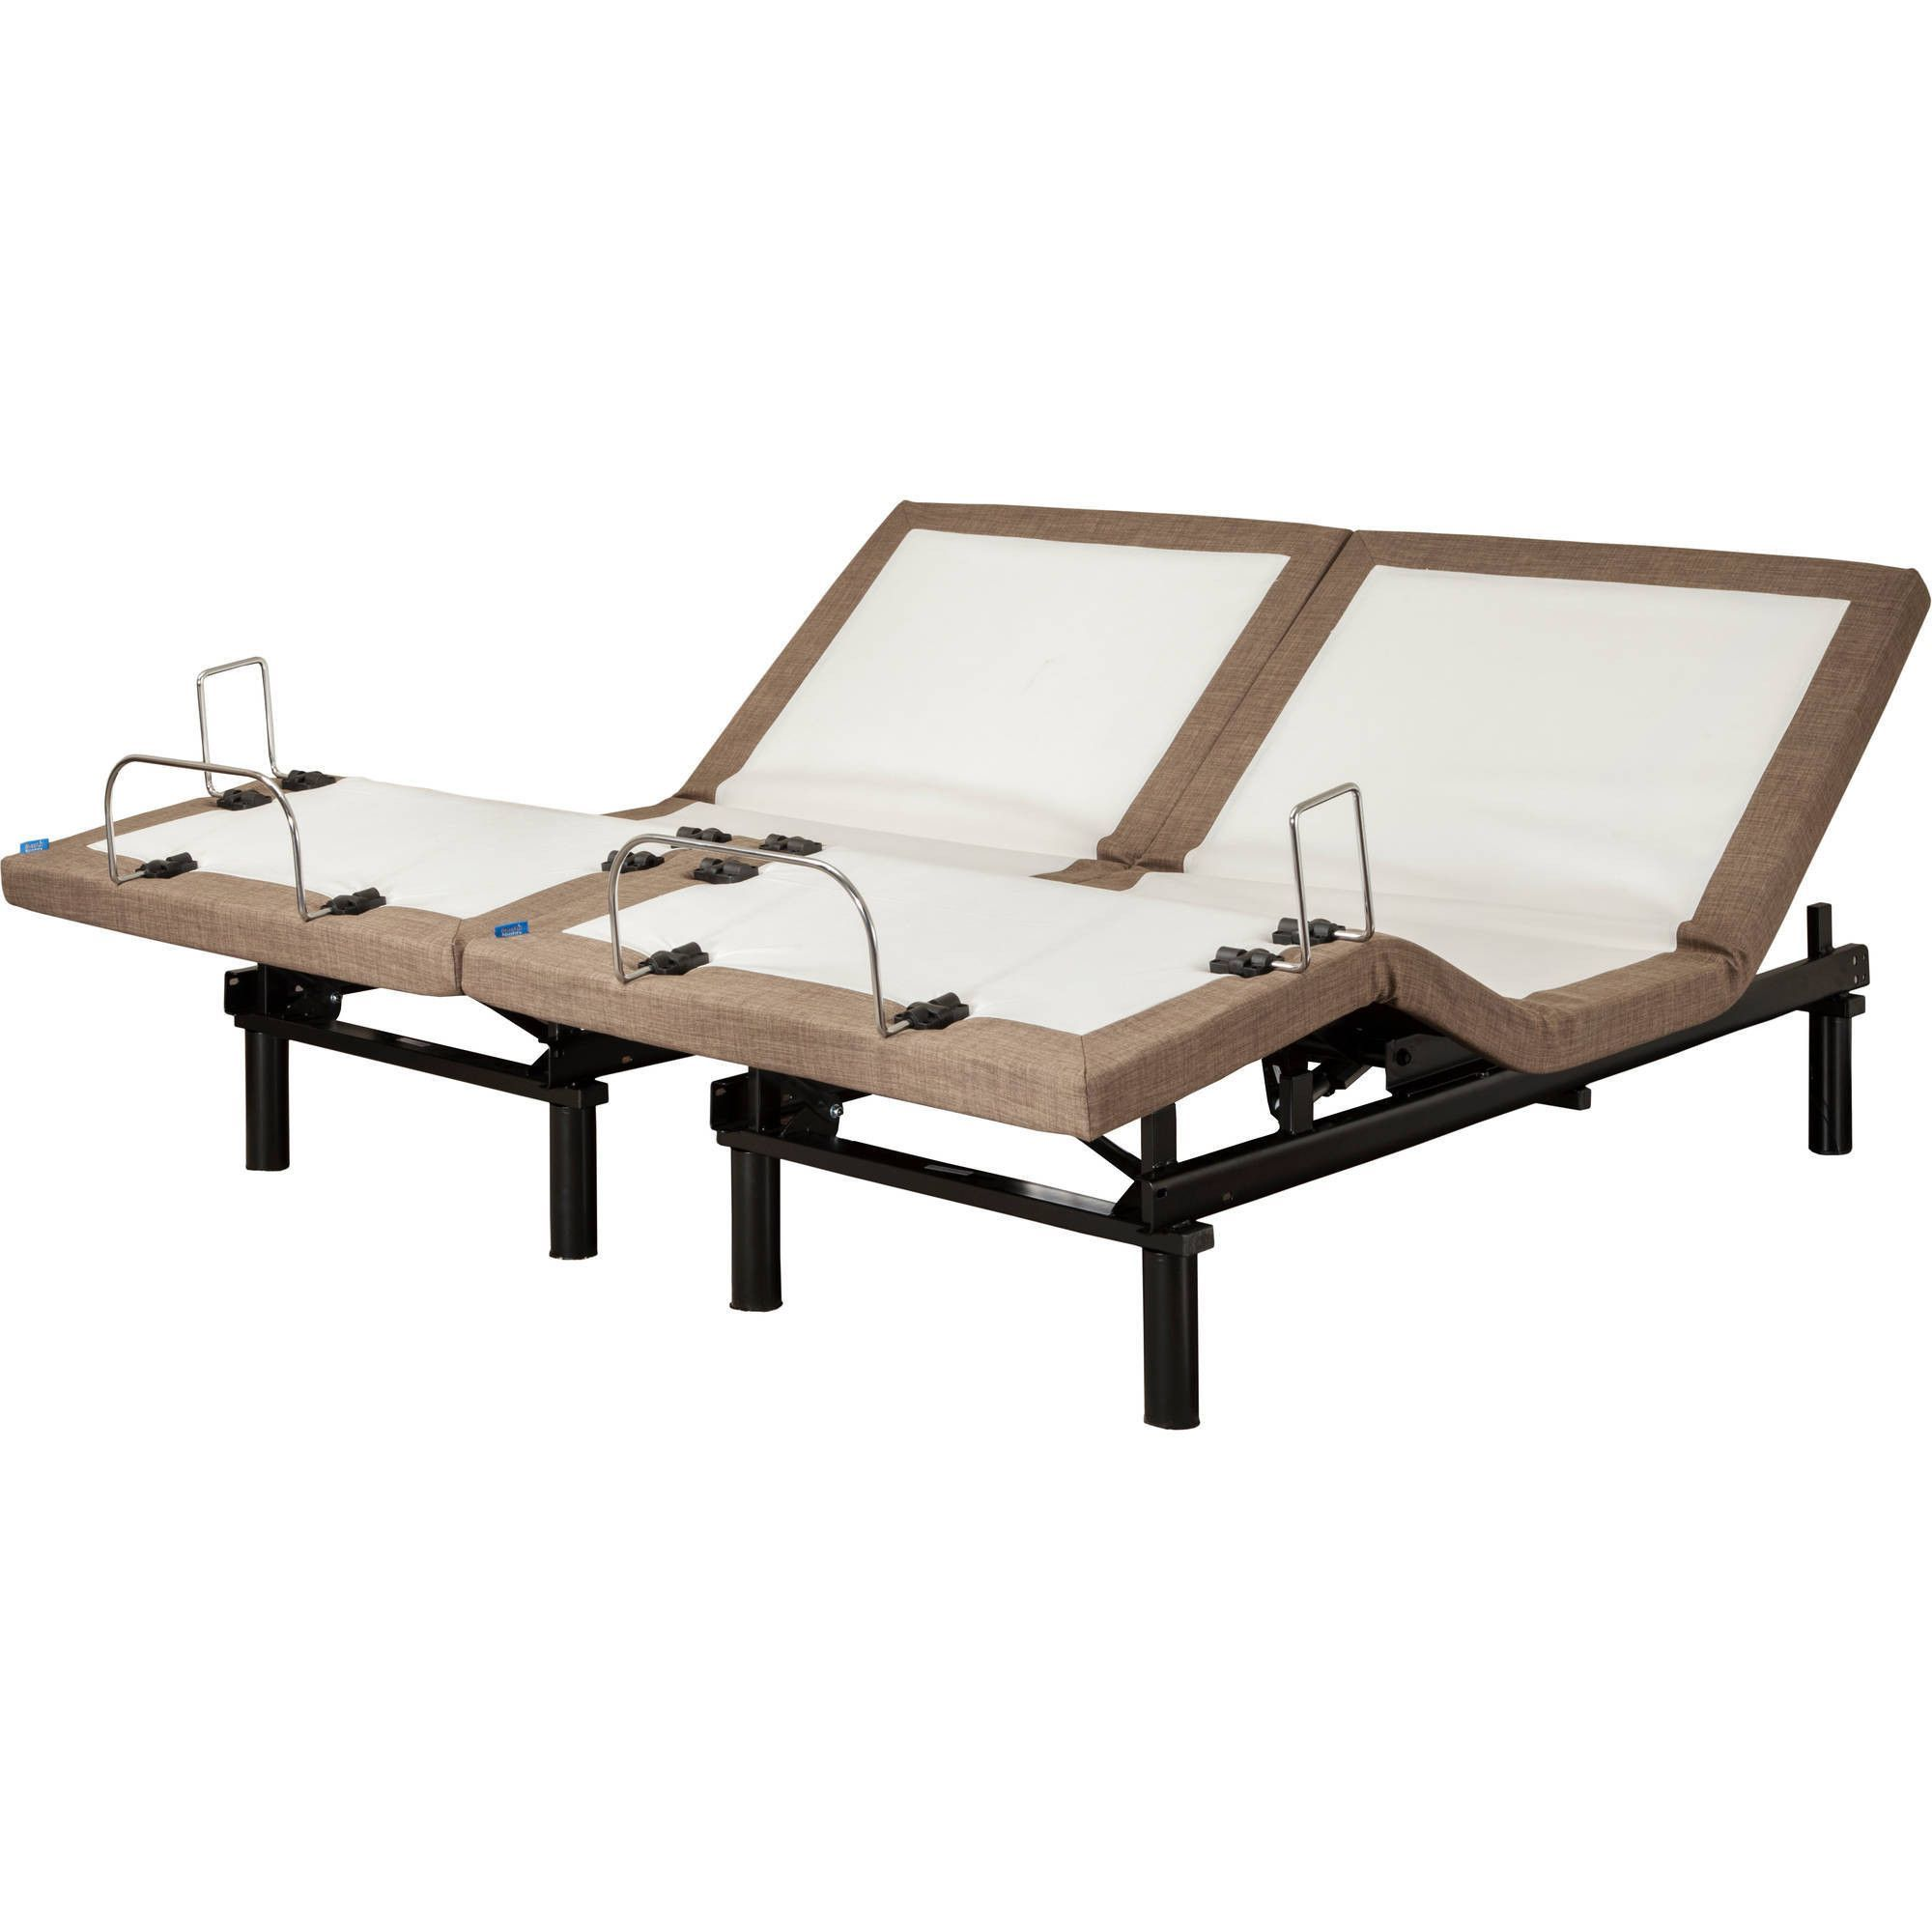 Best Blissful Nights M 2000 Adjustable Bed Base In Brown 640 x 480